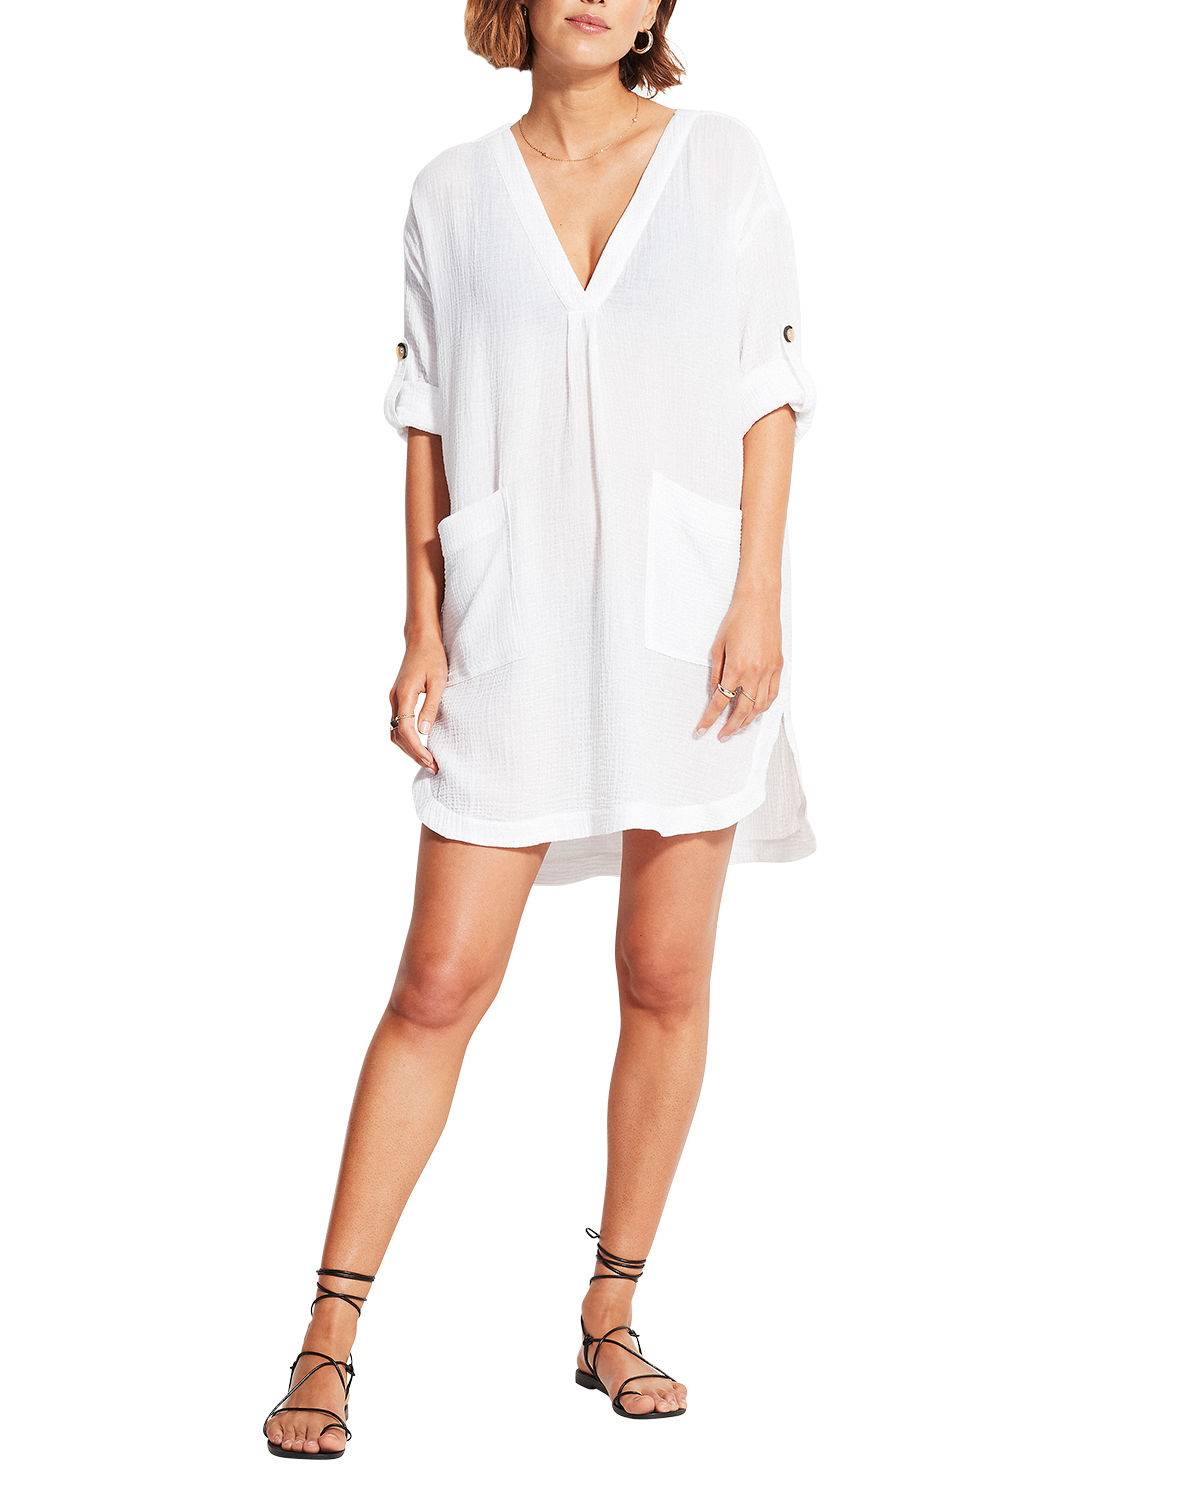 Seafolly Aloha Essential Coverup Dress - Size: Small